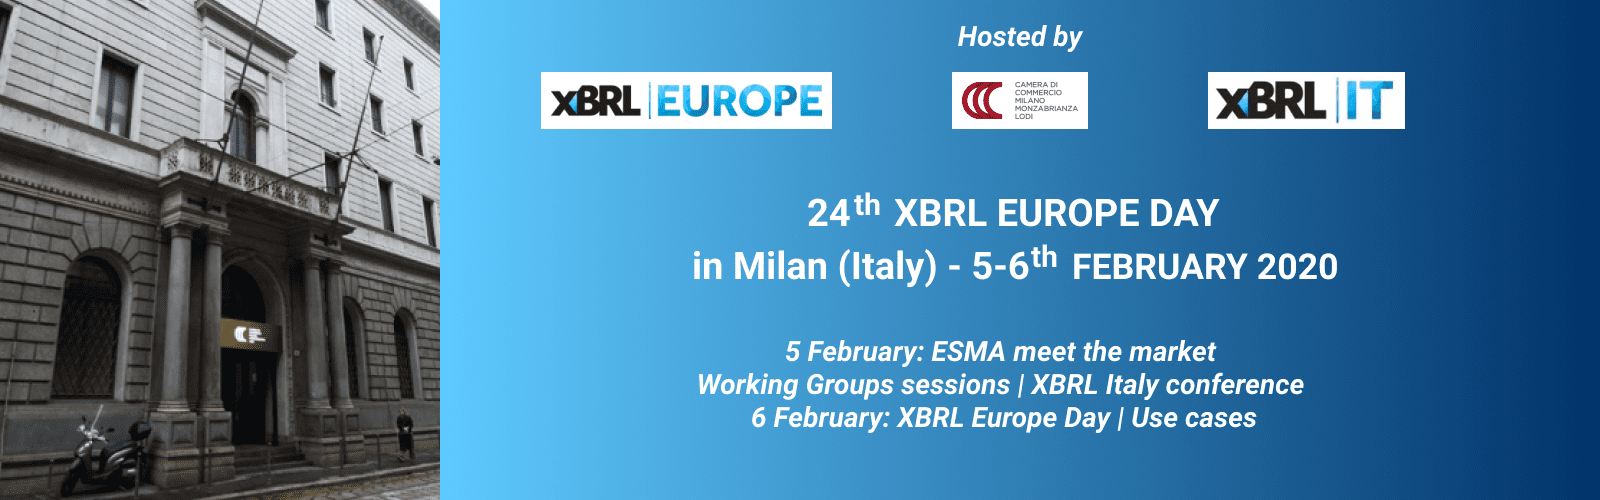 24th XBRL Europe Day